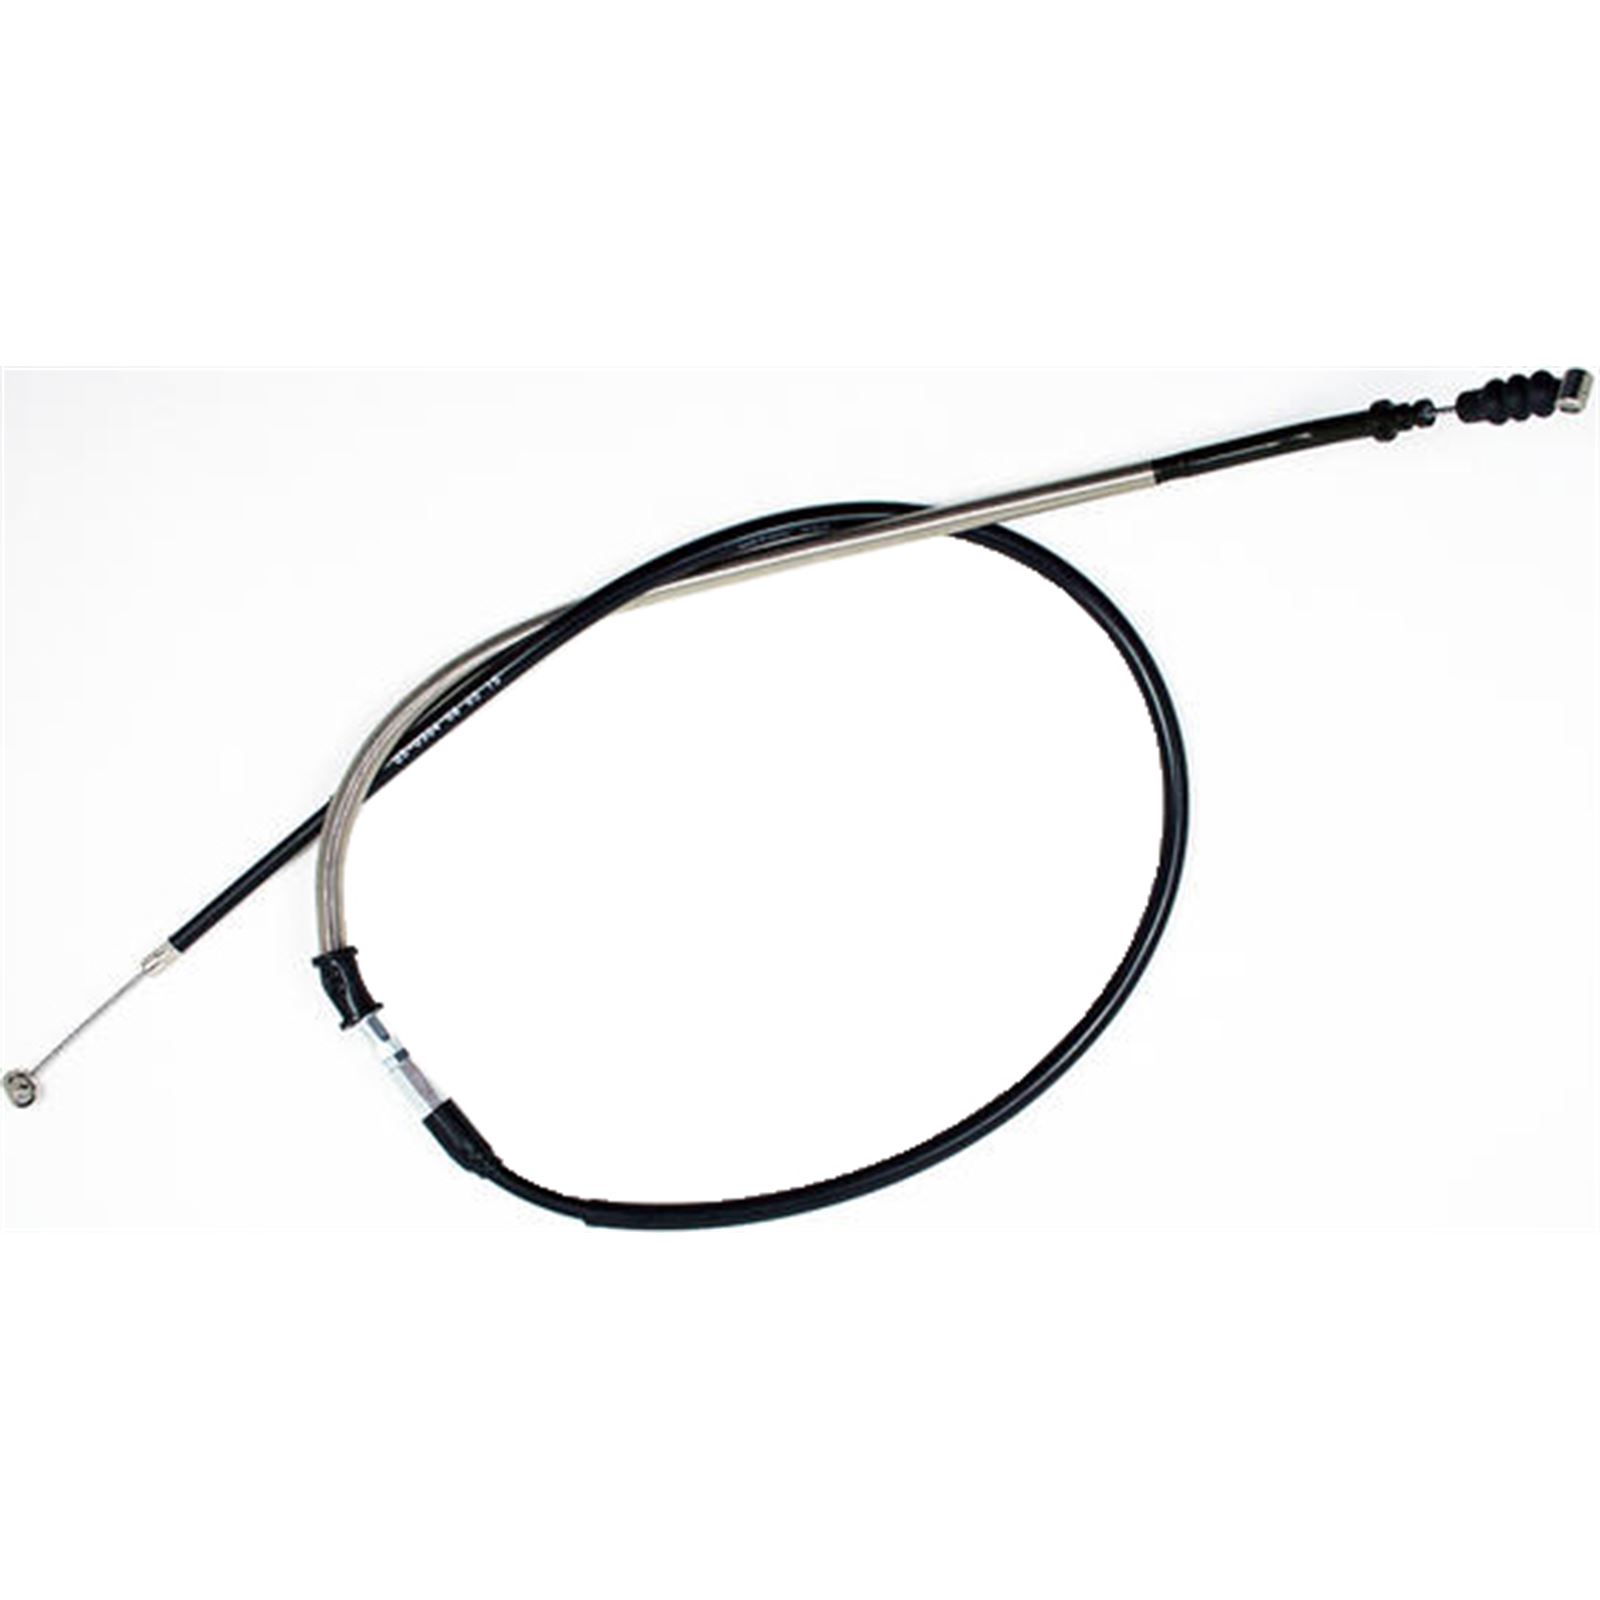 Motion Pro Motocross/Off-Road Clutch Cable